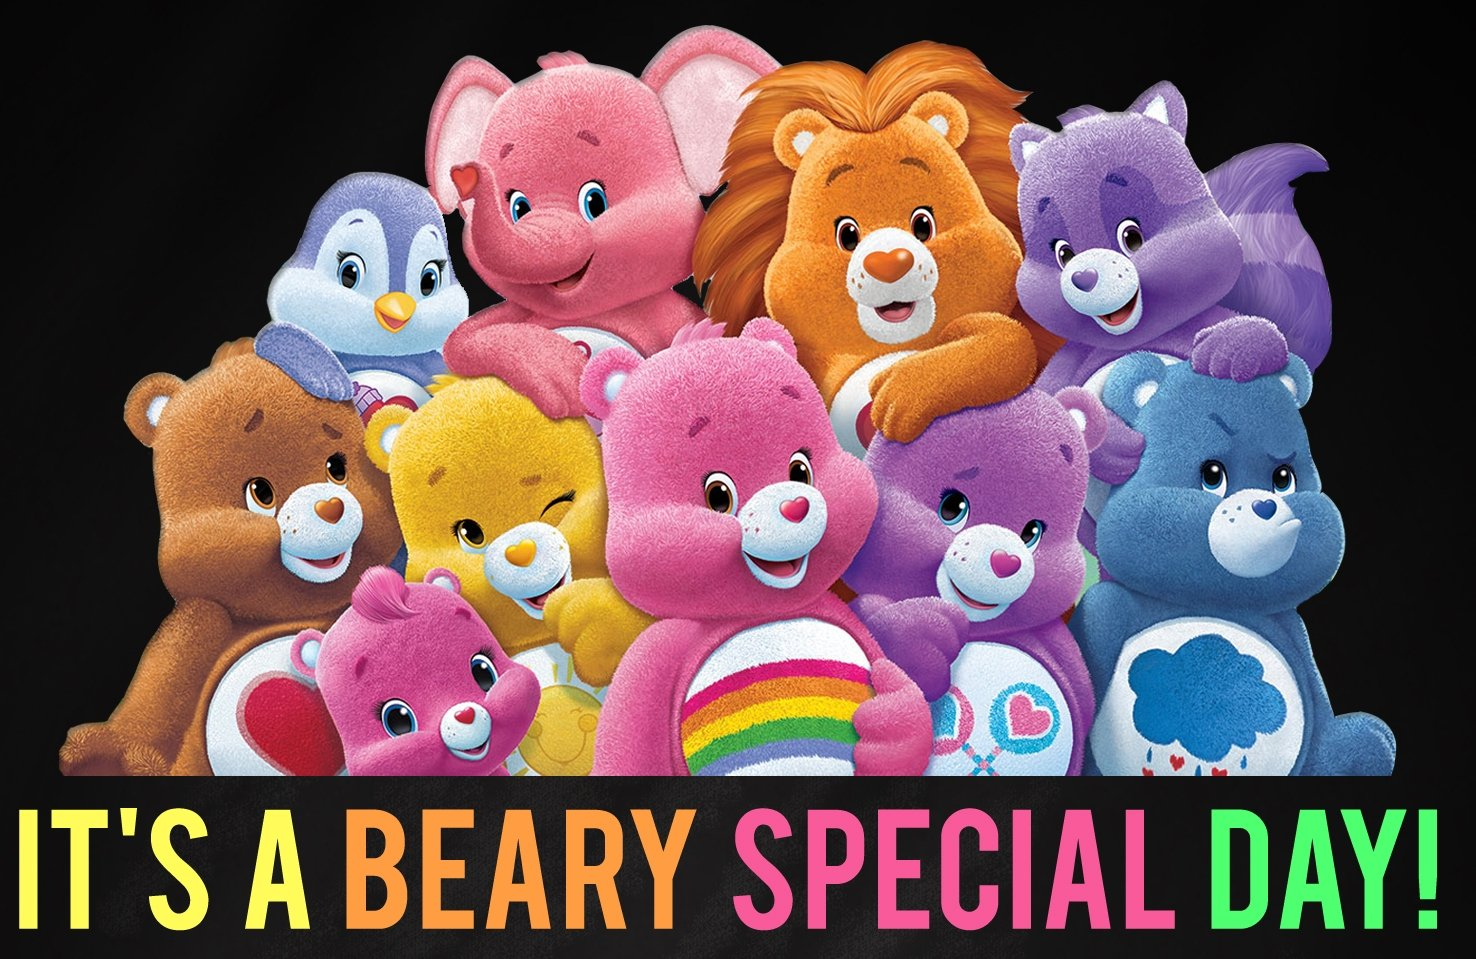 Bitty\'s 6th care bears themed birthday party! | 4 lil monsters